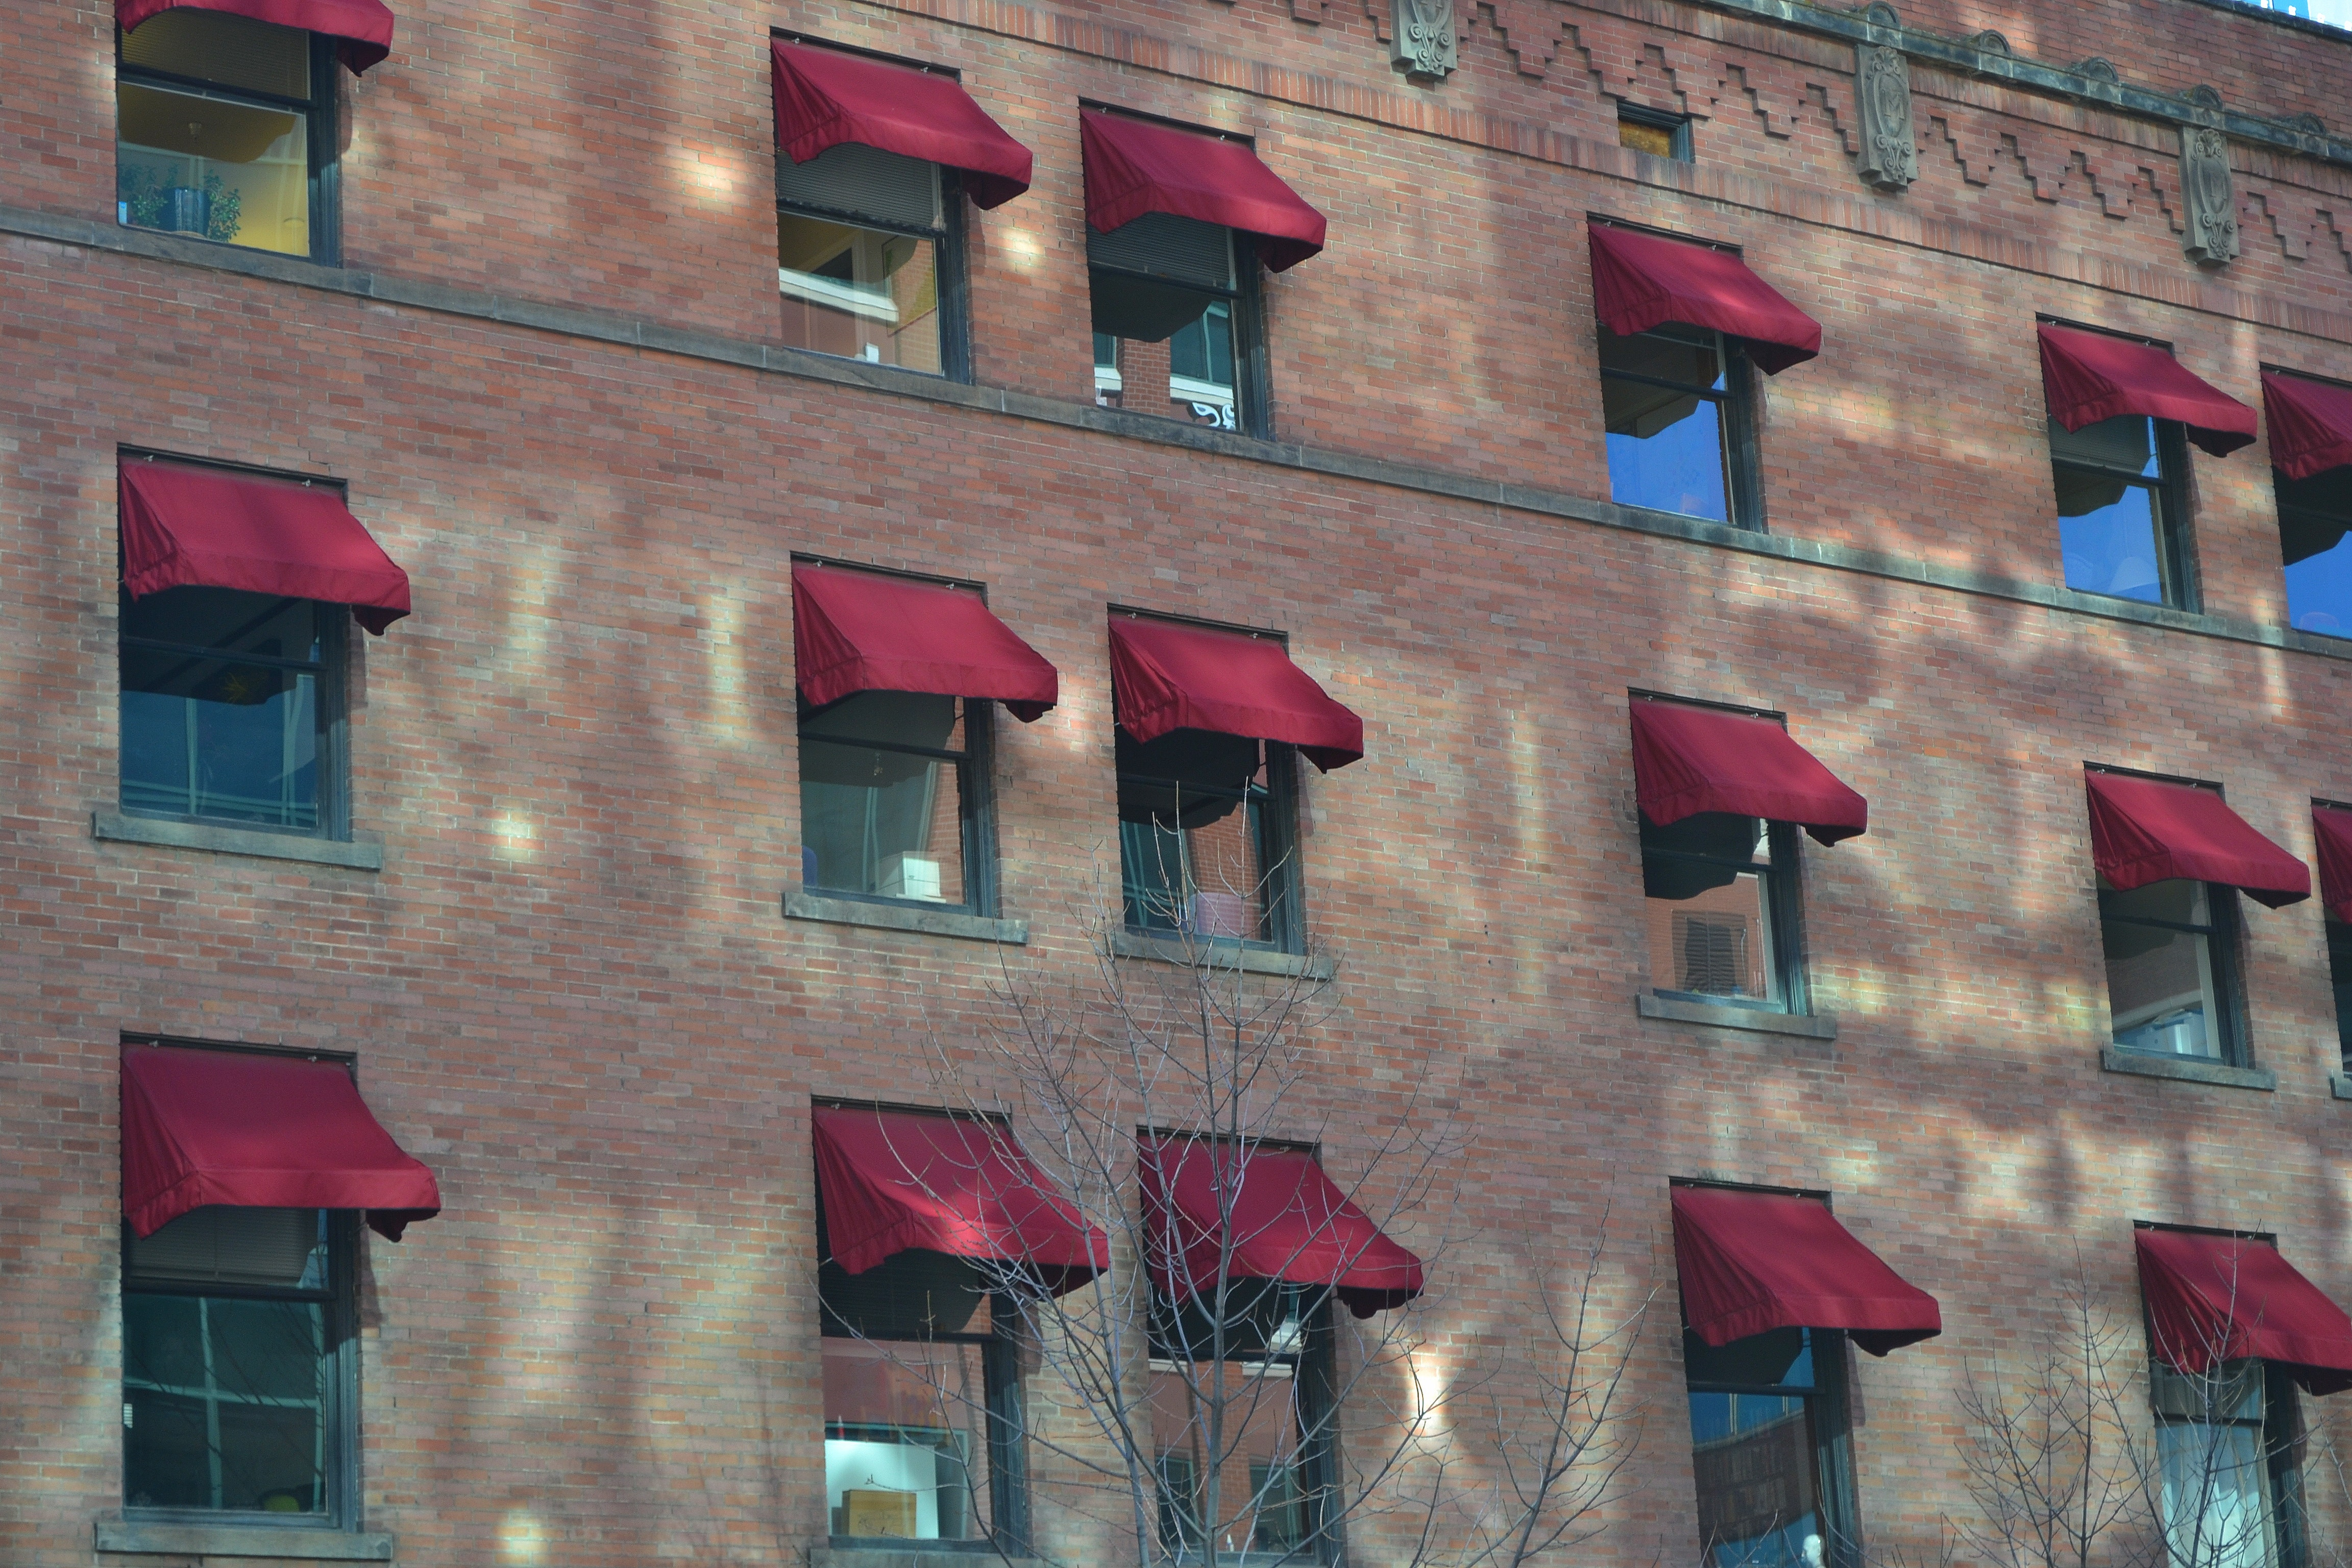 Windows with burgundy canopies along the brick wall of the building photo